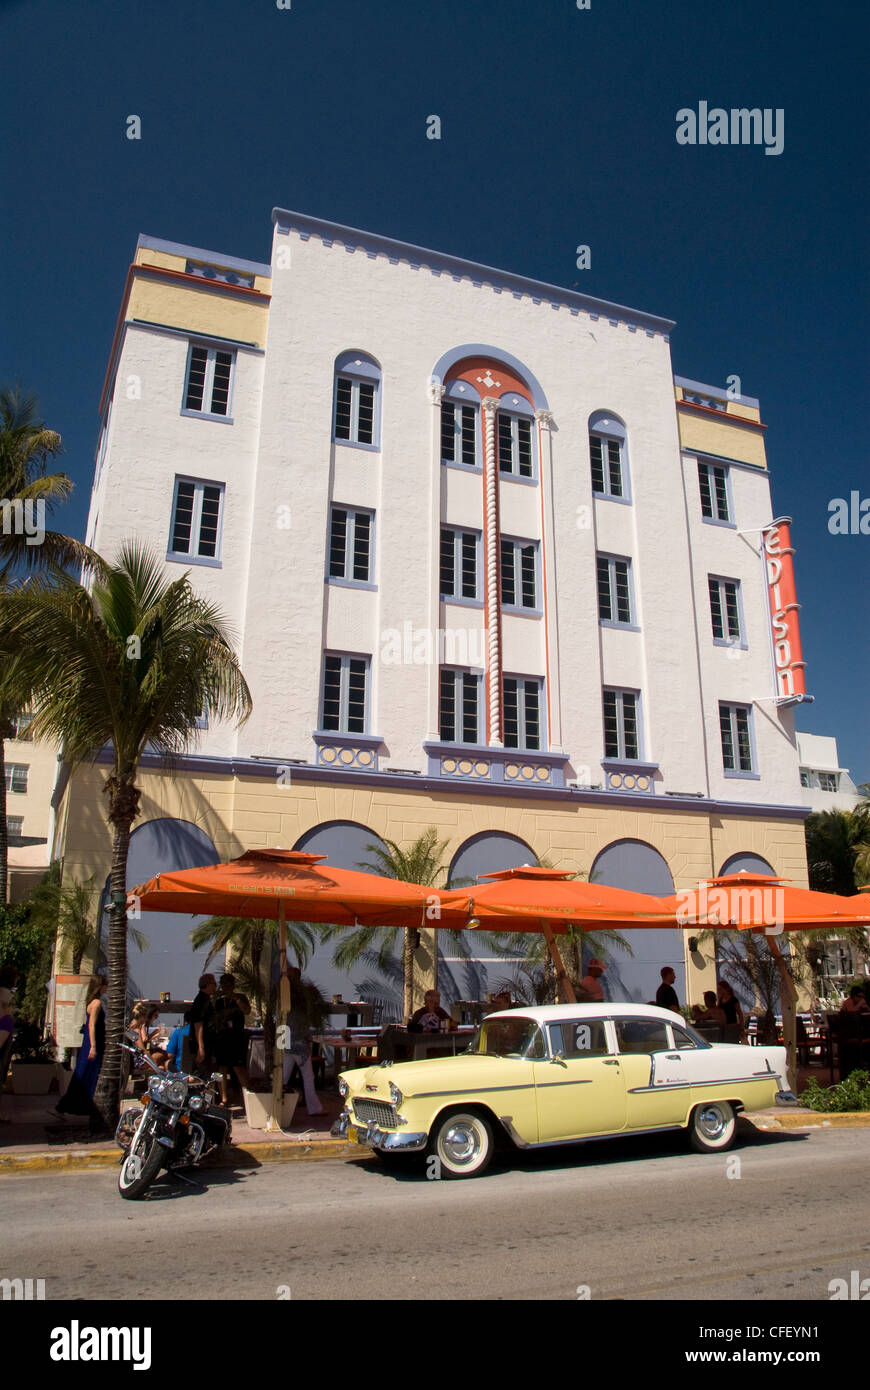 Classic,with old Chevrolet, Art Deco District, South Beach, Miami, Florida, United States of America, - Stock Image